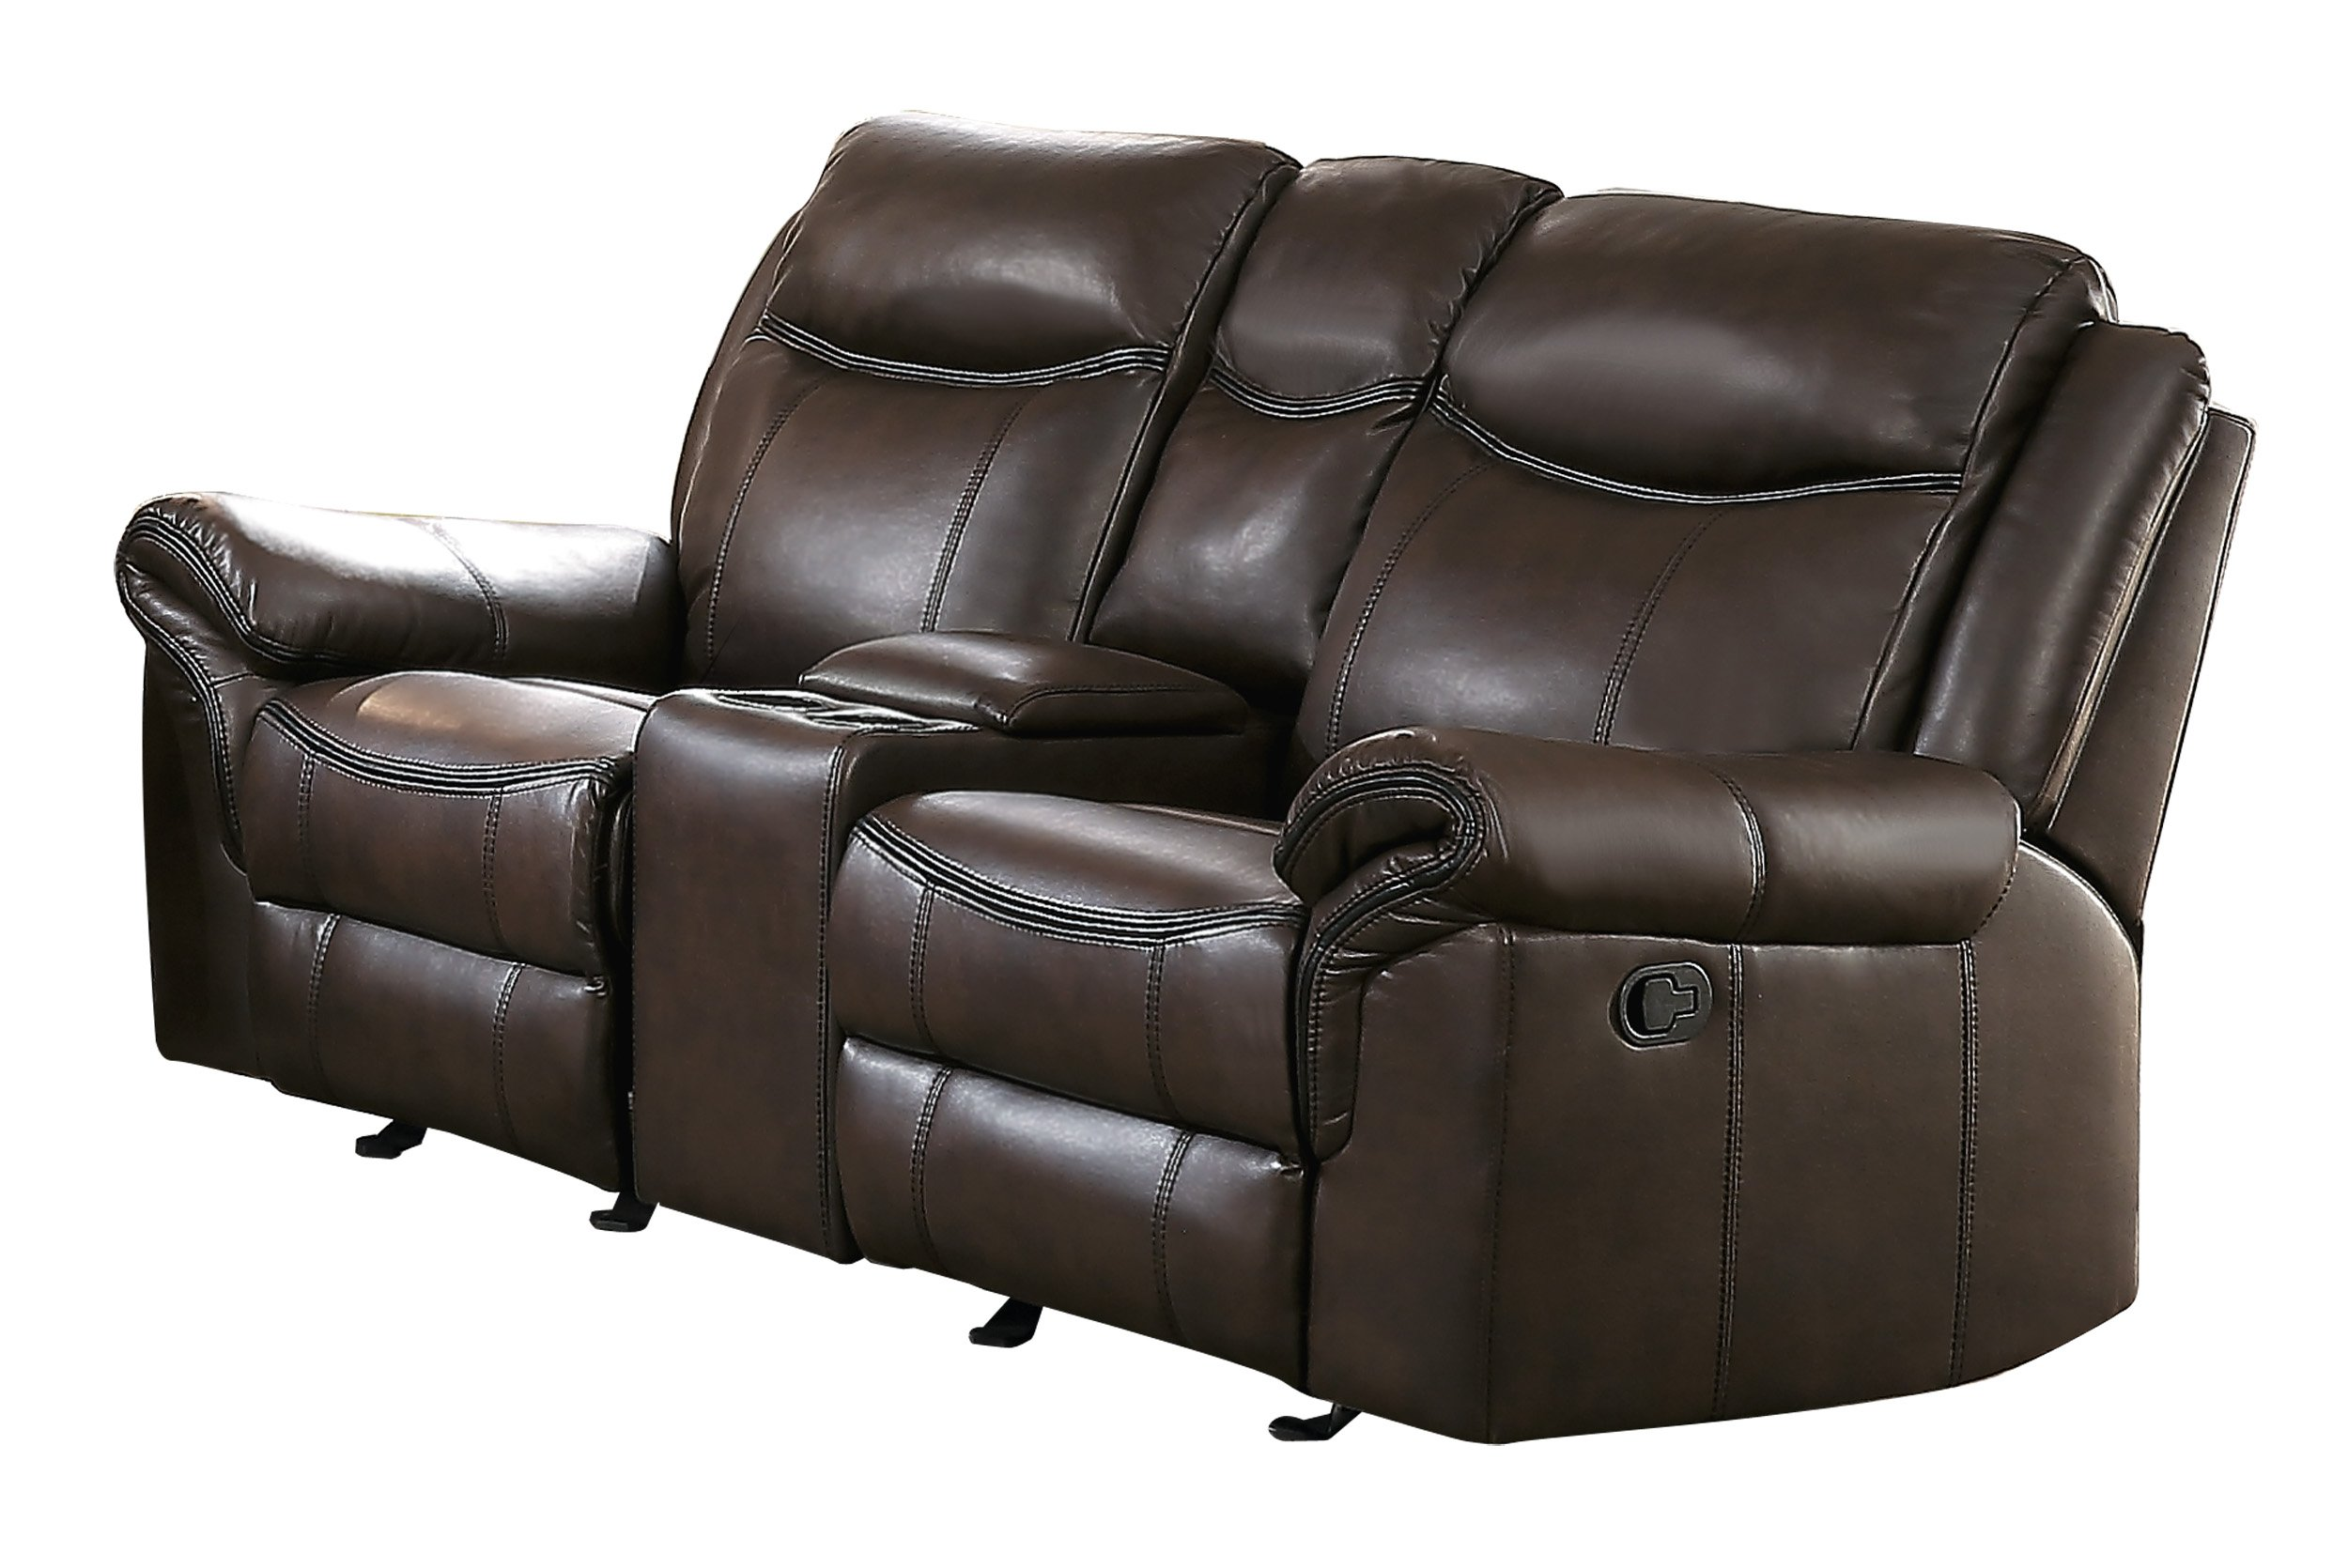 Homelegance Aram Glider Recliner Loveseat with Center Cup Holder Console AireHyde Breathable Faux Leather, Brown